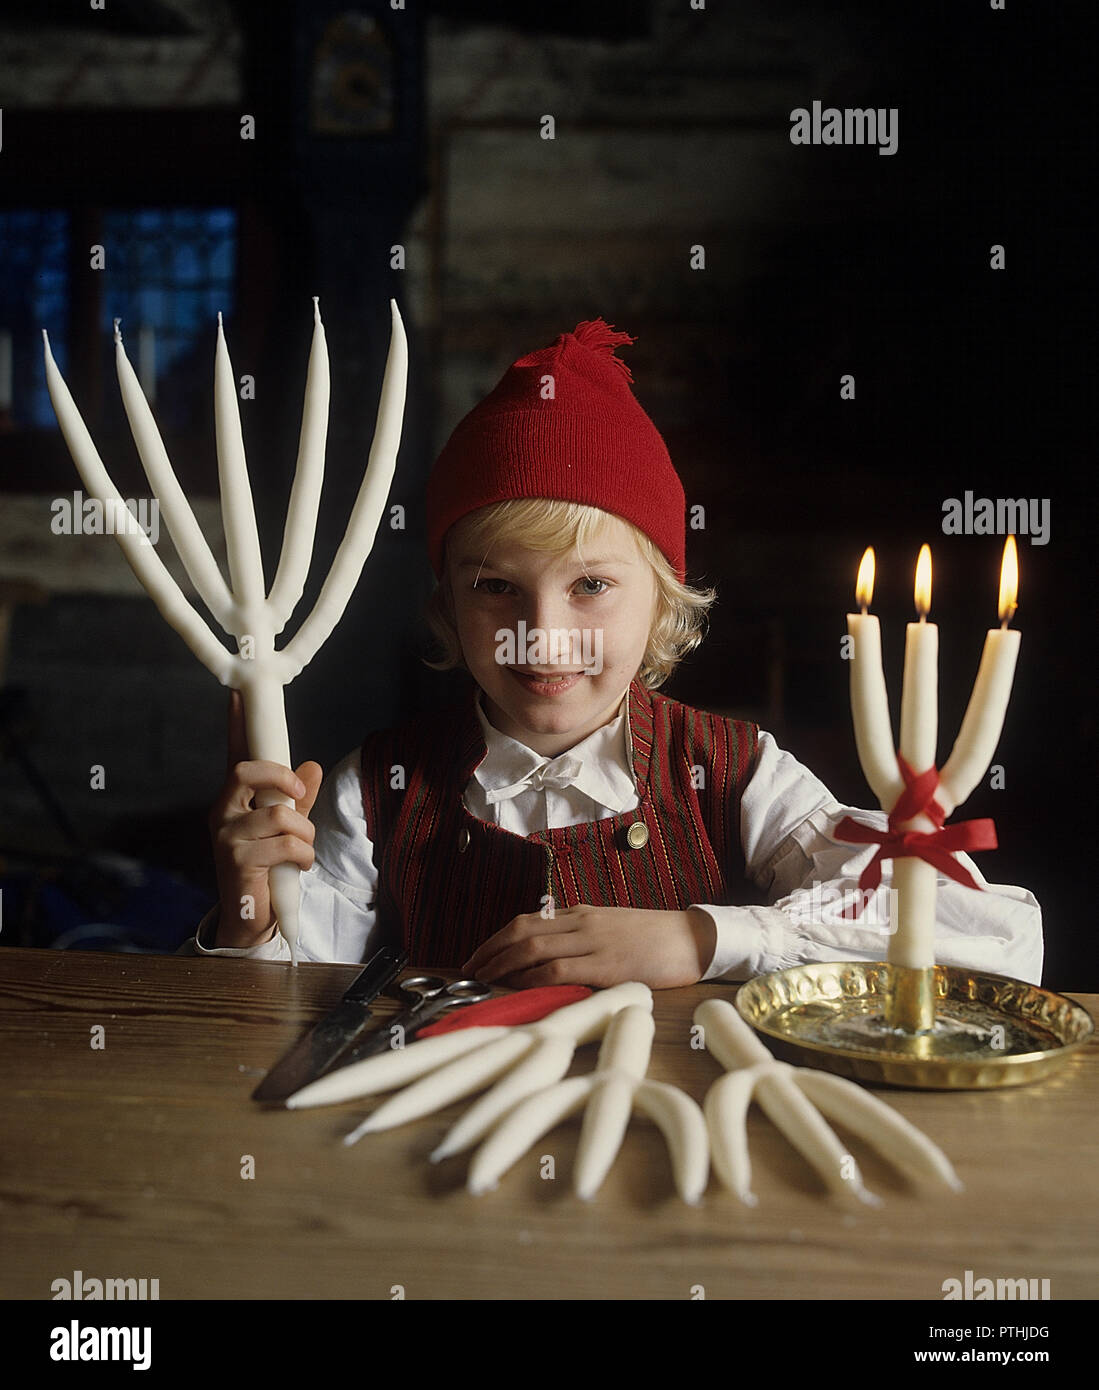 Making candles. A boy dressed in traditional Swedish folk costume holds a handmade stearin candle. They dip the candlewick into the liquid stearin many times, and add layer on layer of stearin onto the candel, until it's ready. This candle with five arms is an old swedish handcrafted candle tradition. - Stock Image